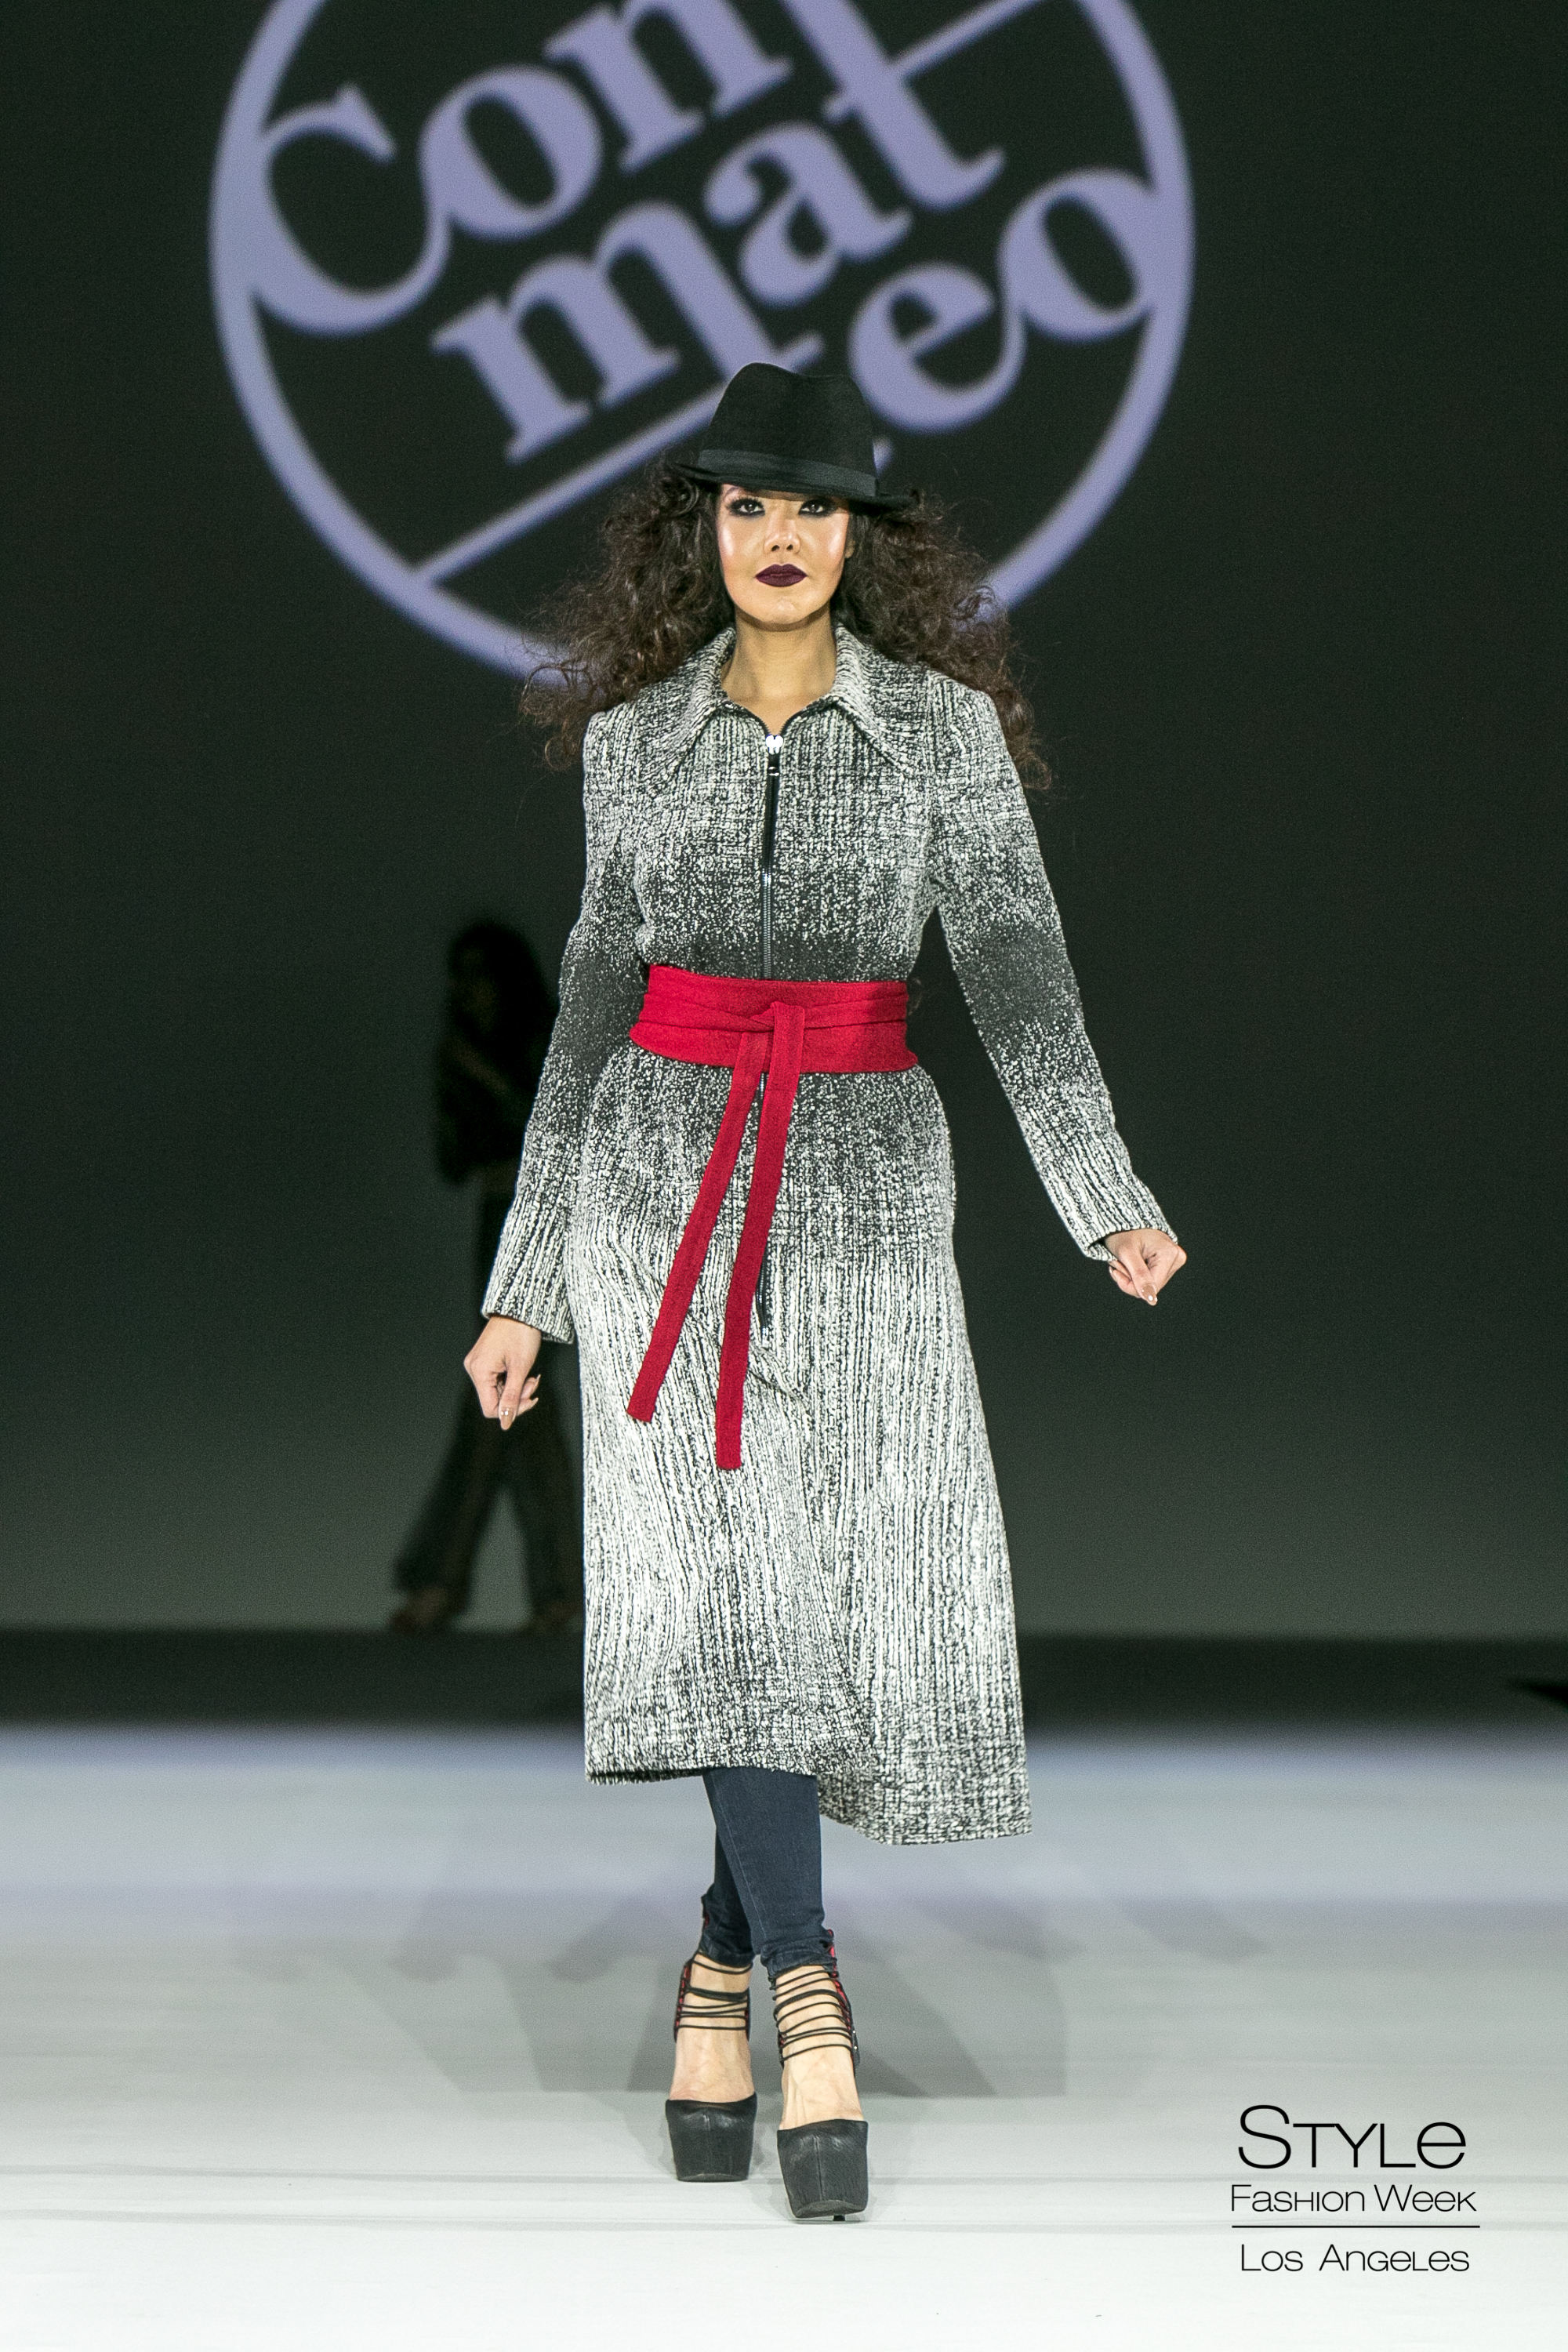 Style Fashion Week Ignites The Runway At The Pacific Design Center In Los Angeles On The Second